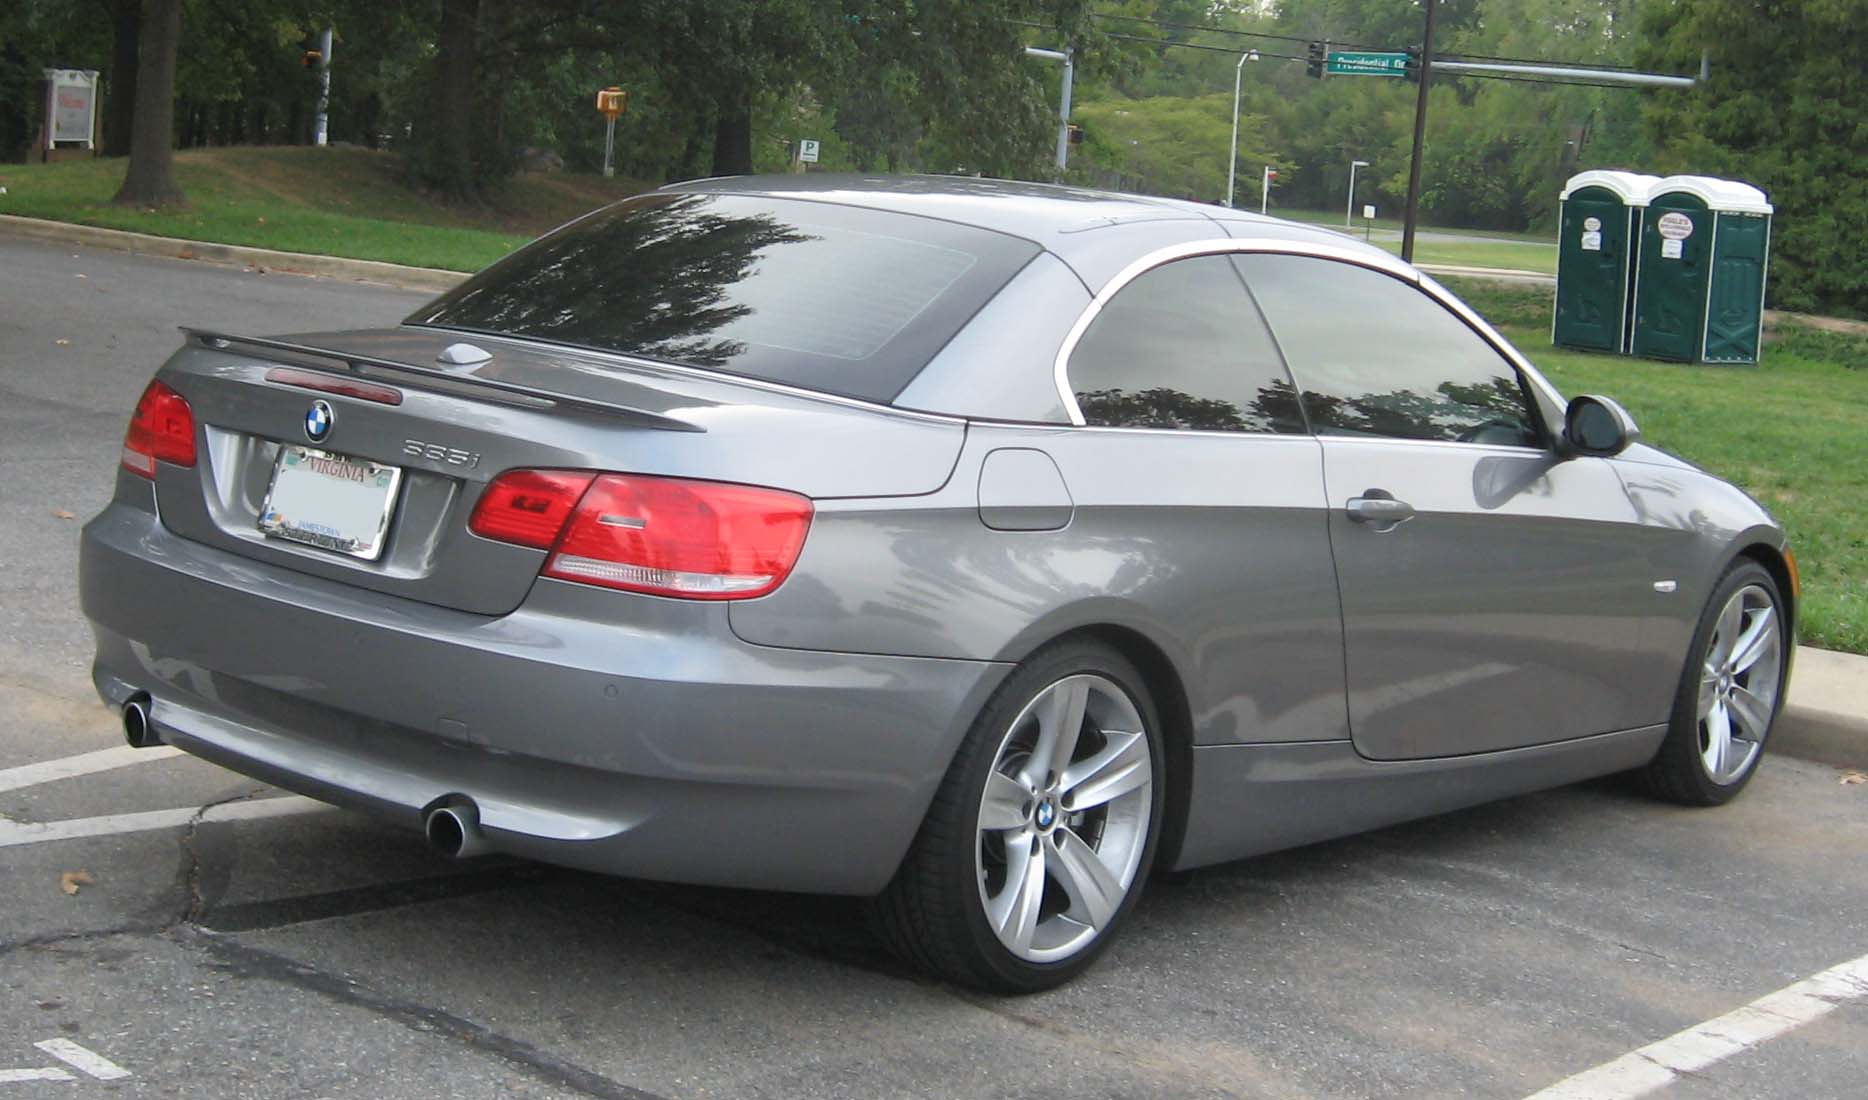 Description BMW 335i convertible rear